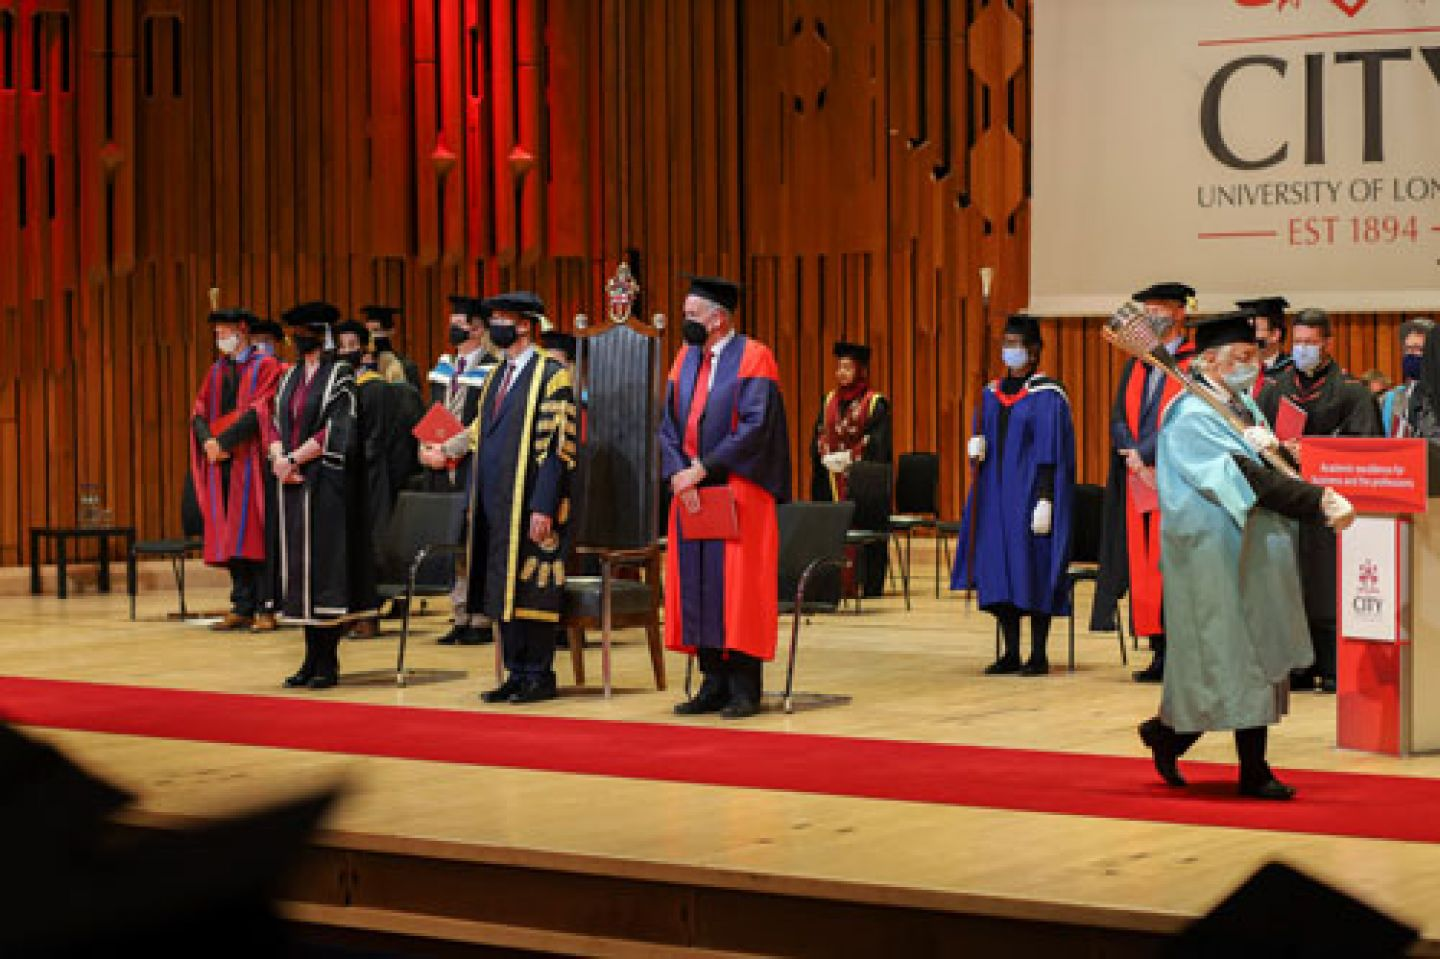 The academic procession wear face coverings on stage.